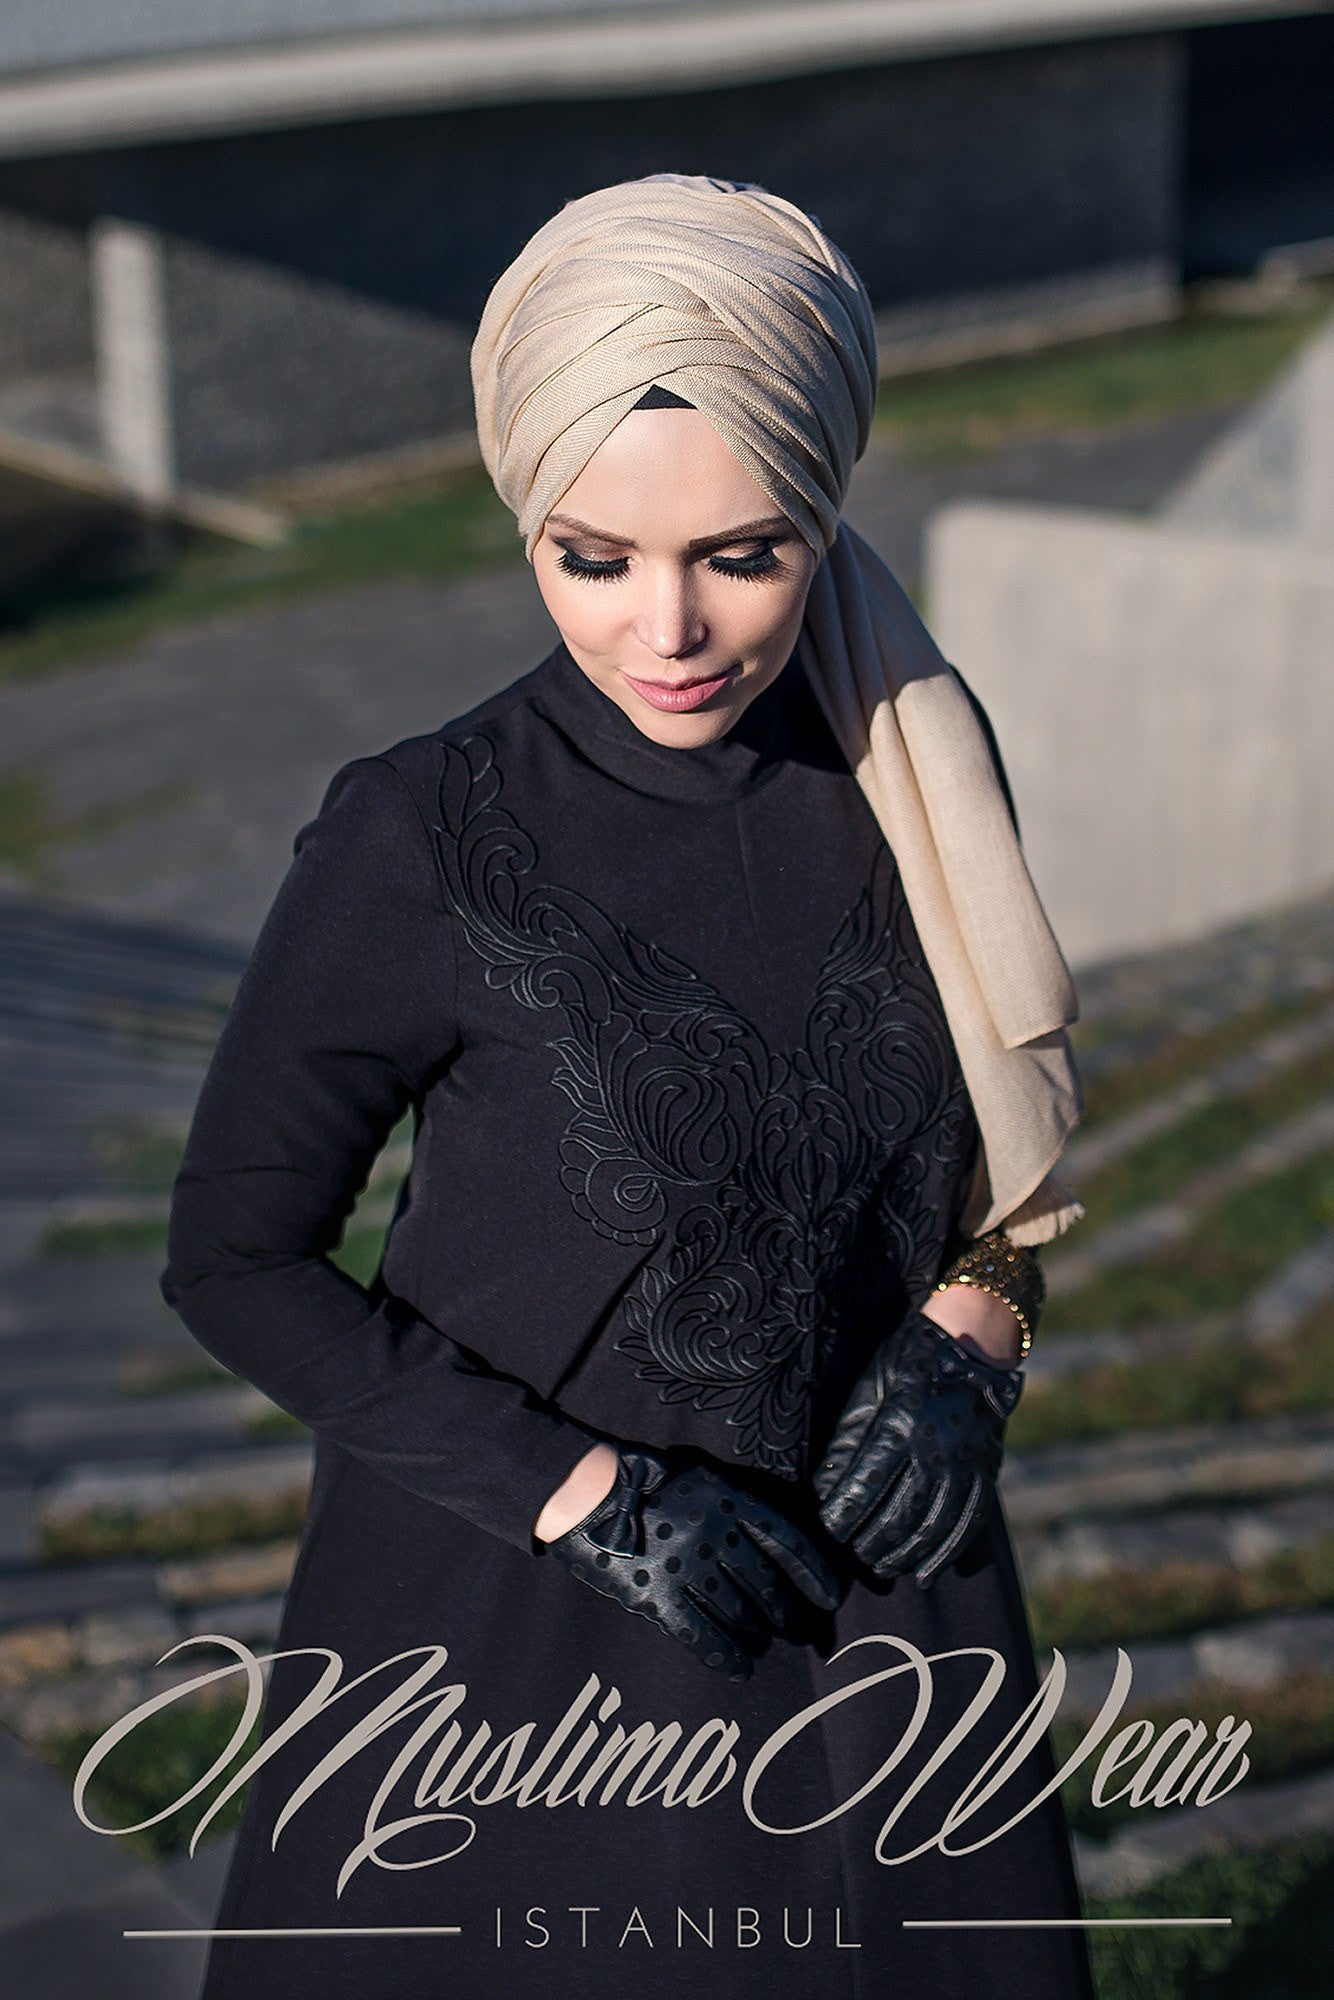 Muslima Wear Diadema Dress Black